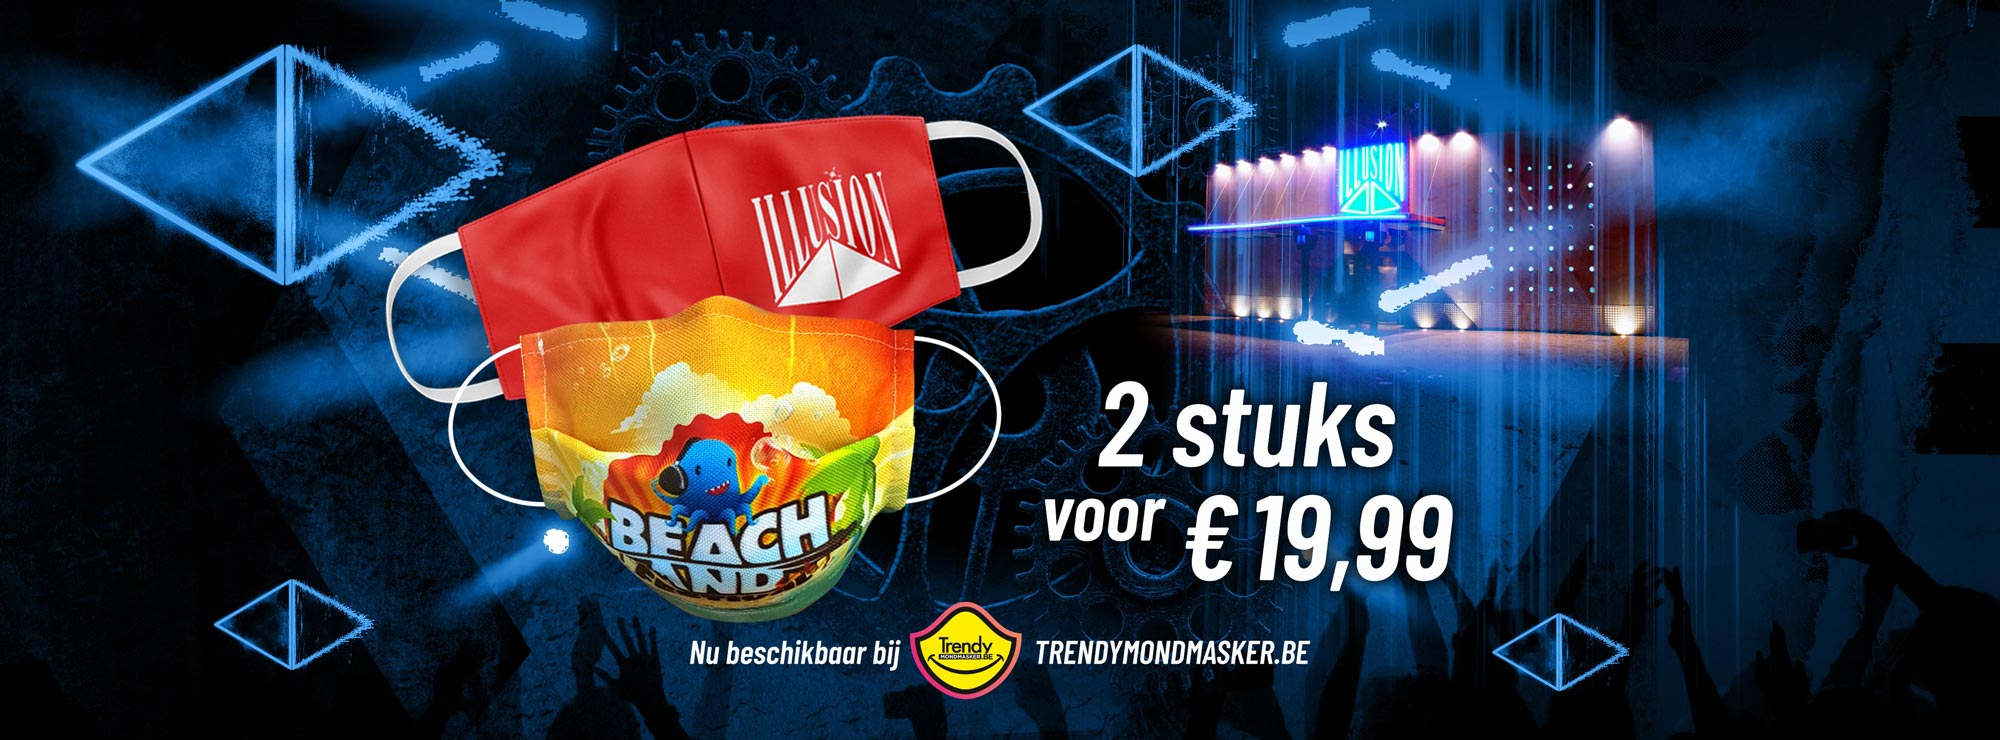 Beachland en Illusion Mondmasker pack